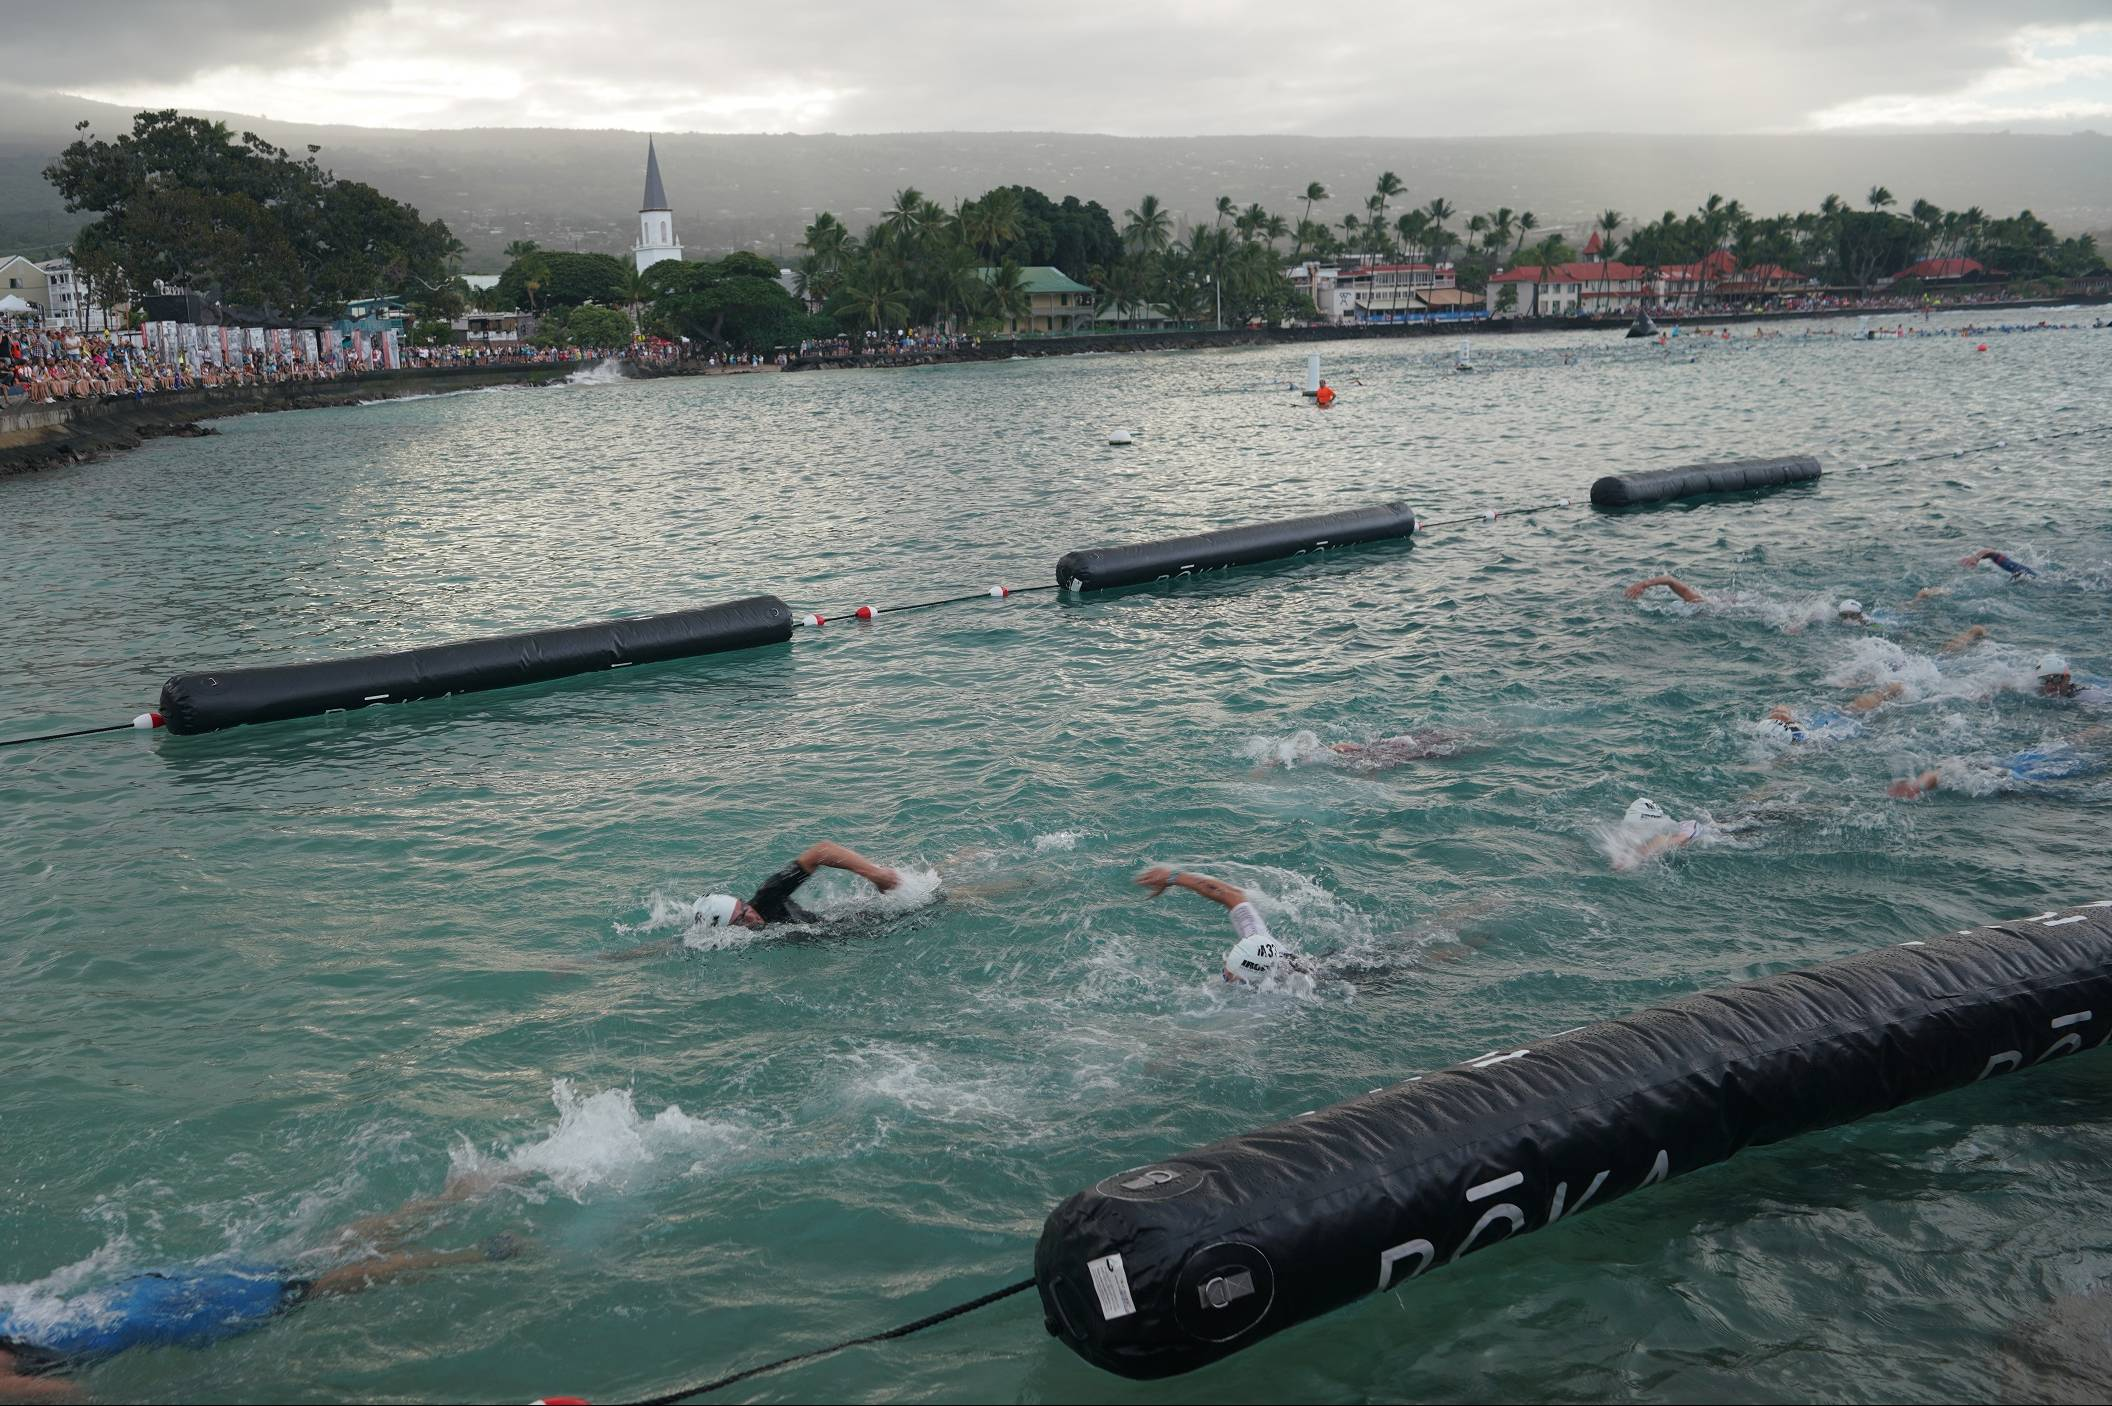 swimmers in the ironman world championship